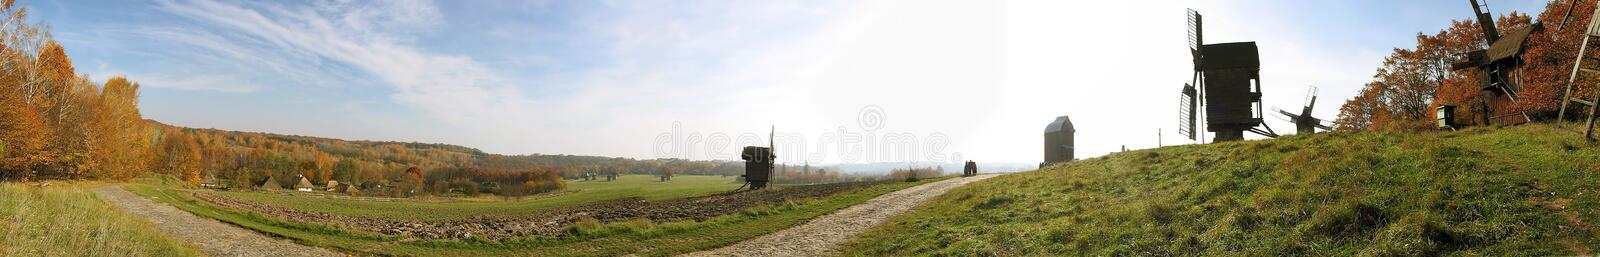 Autumn landscape with windmill royalty free stock images